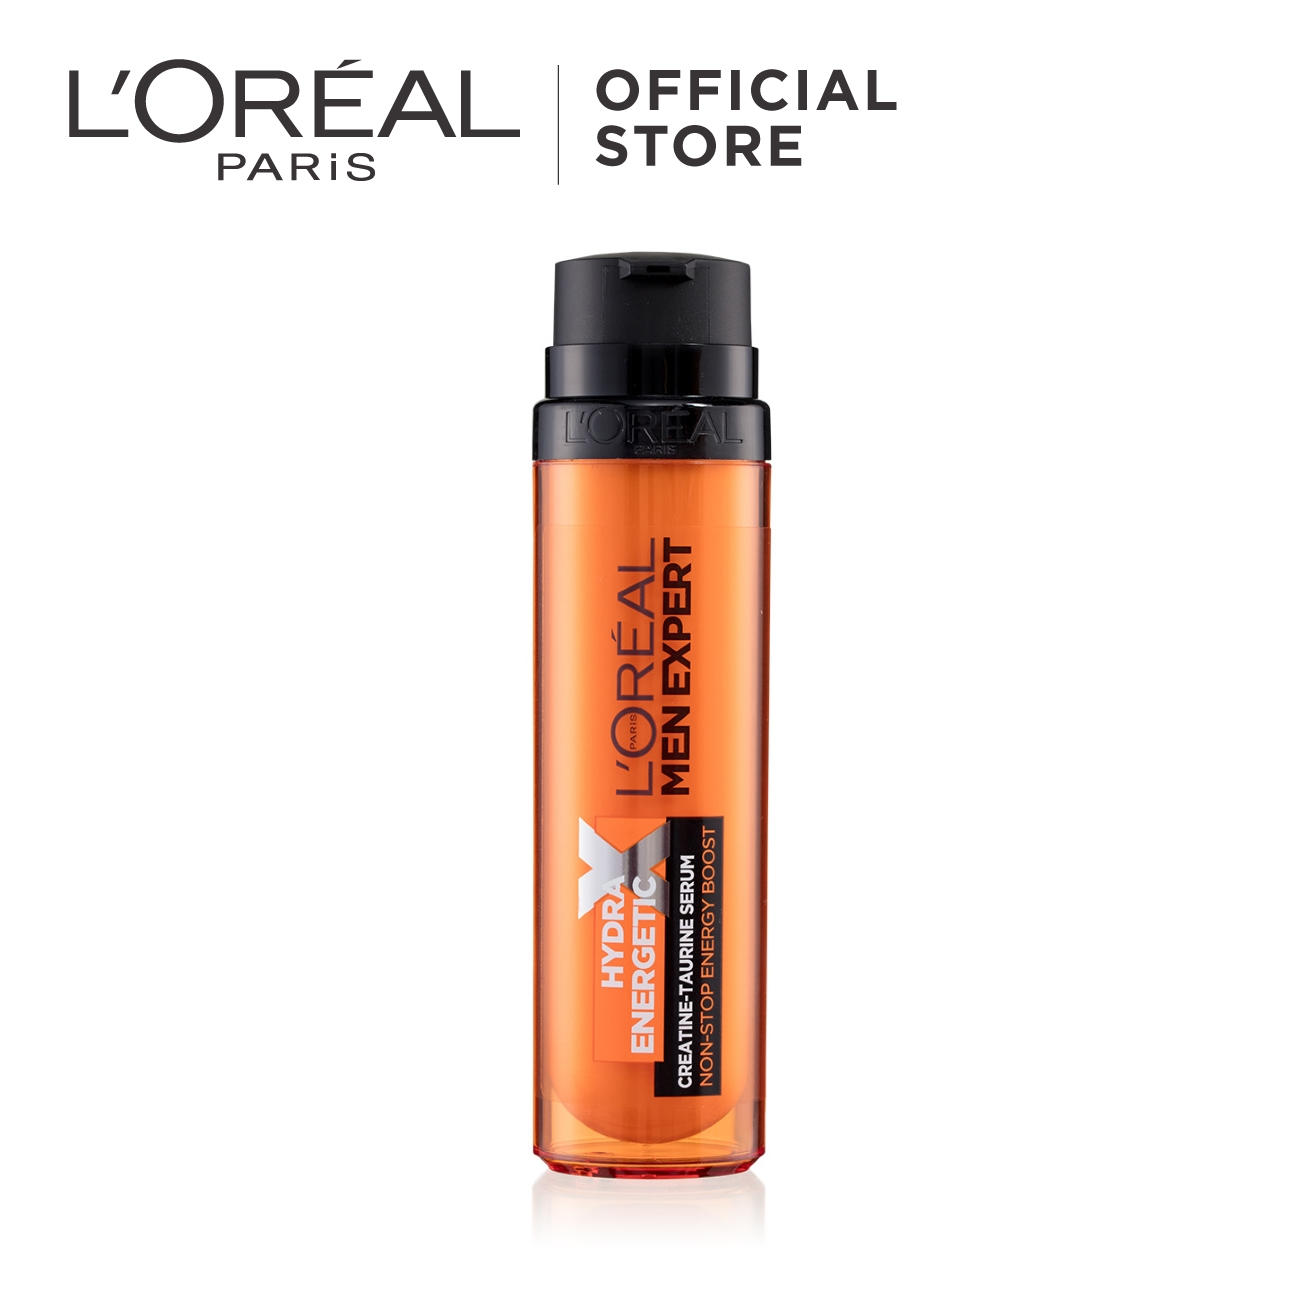 L'Oreal Paris MEN HYDRA ENERGETIC MOISTURISING FLUID 50 ML